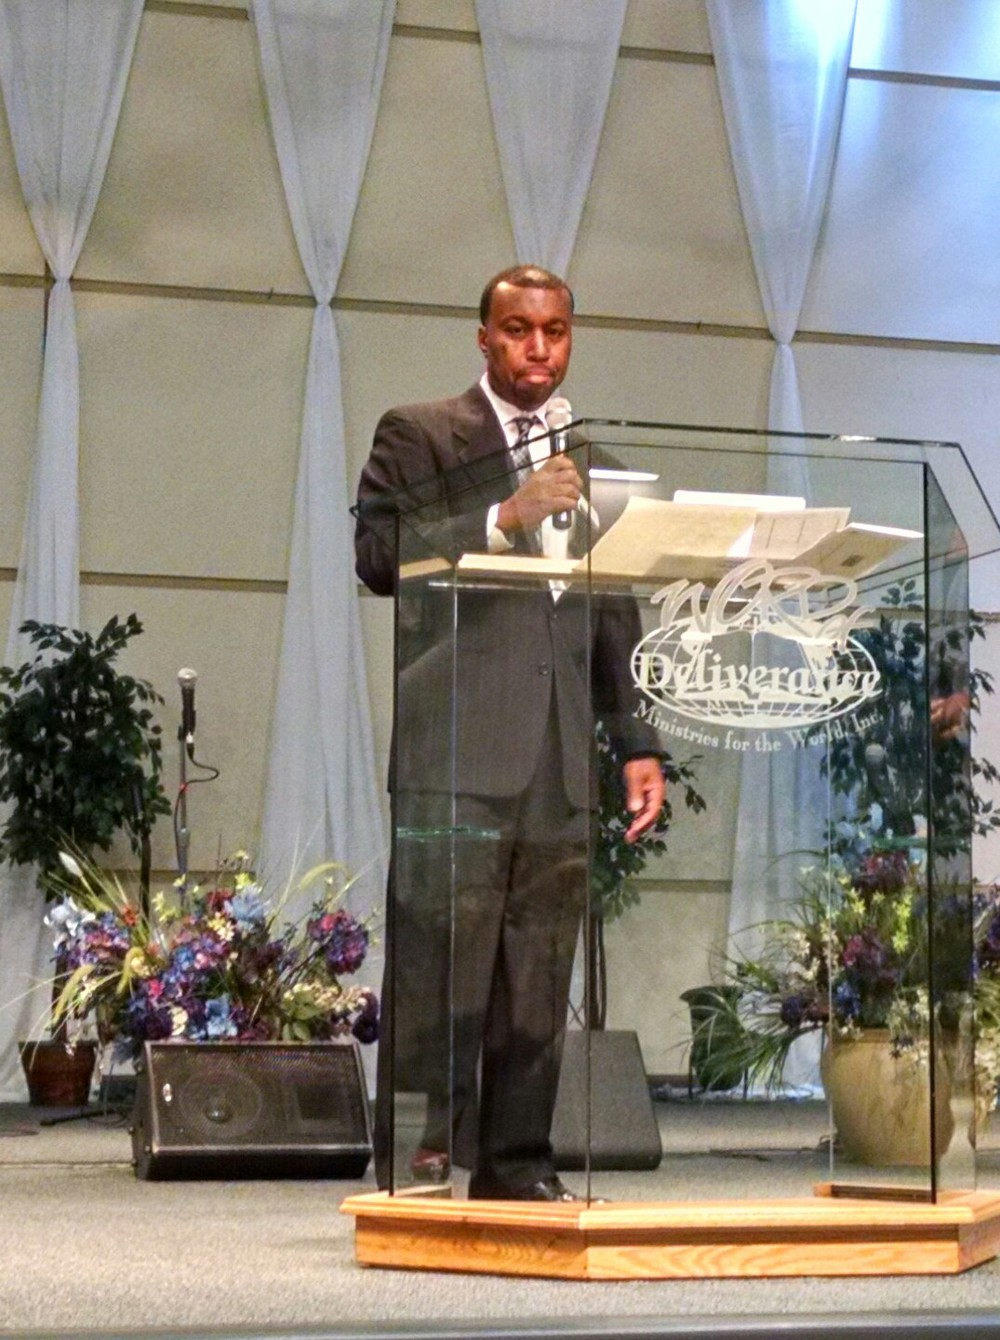 Speaking at Word of Deliverance Business Expo.